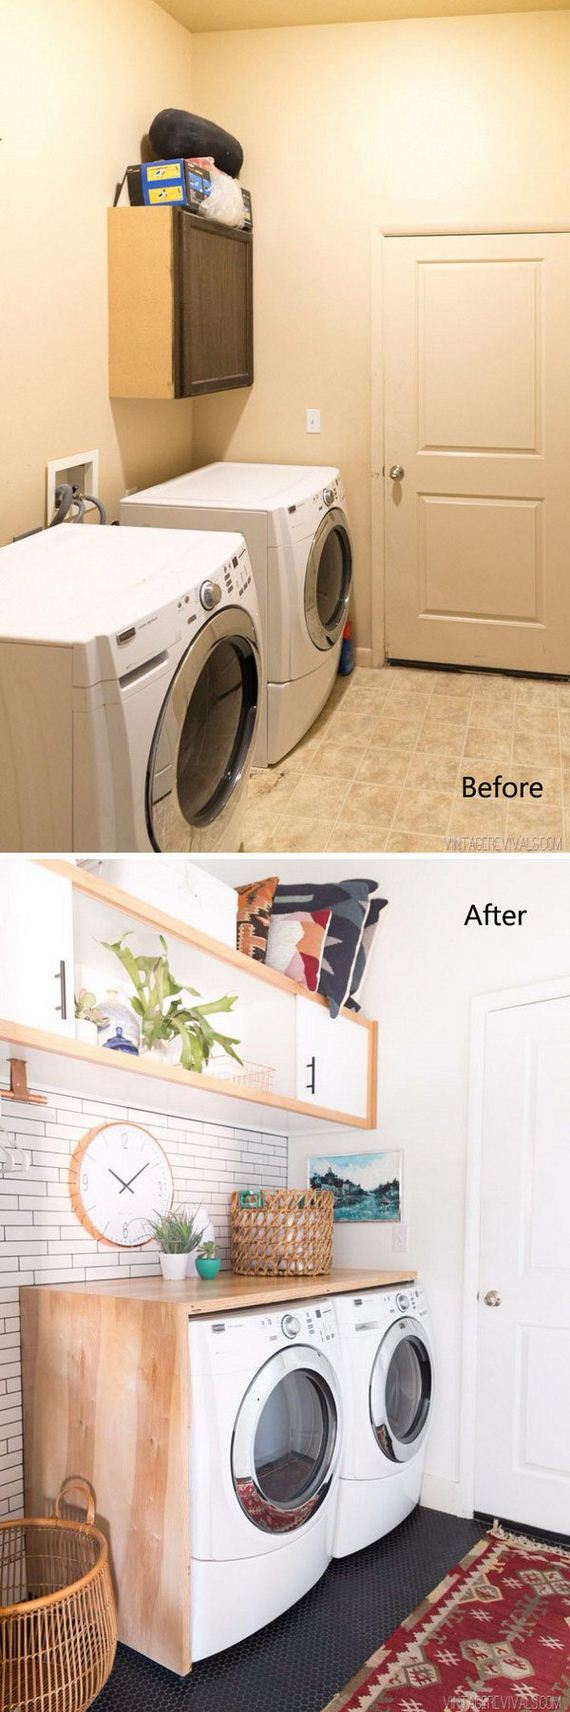 13-before-laundry-room